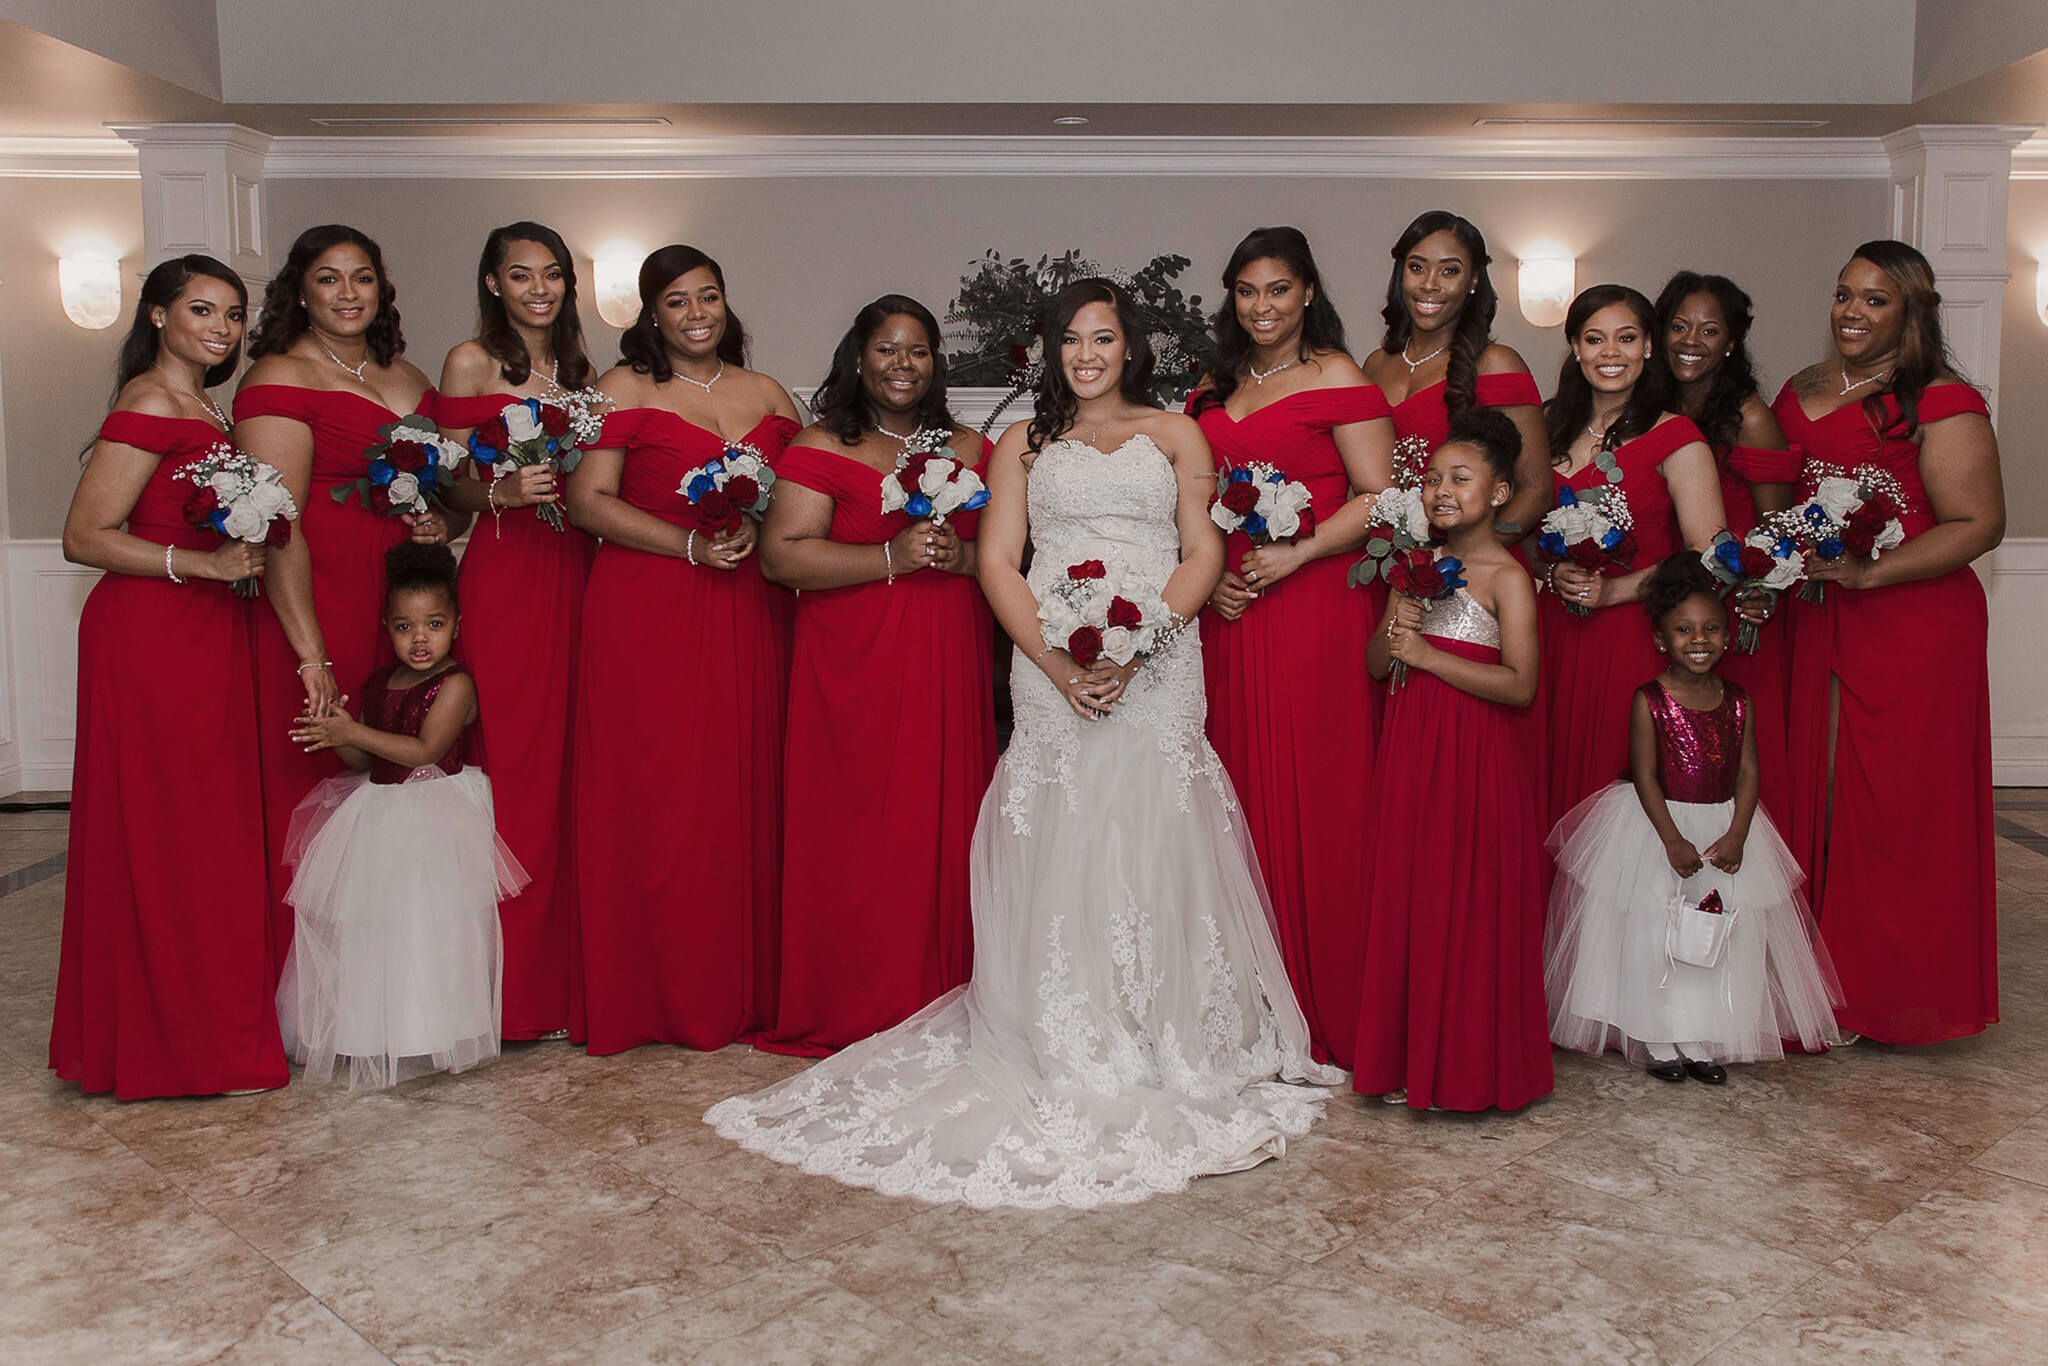 Bridesmaids for a day, besties for life! cocomelodybride & cocomelodybridesmaids